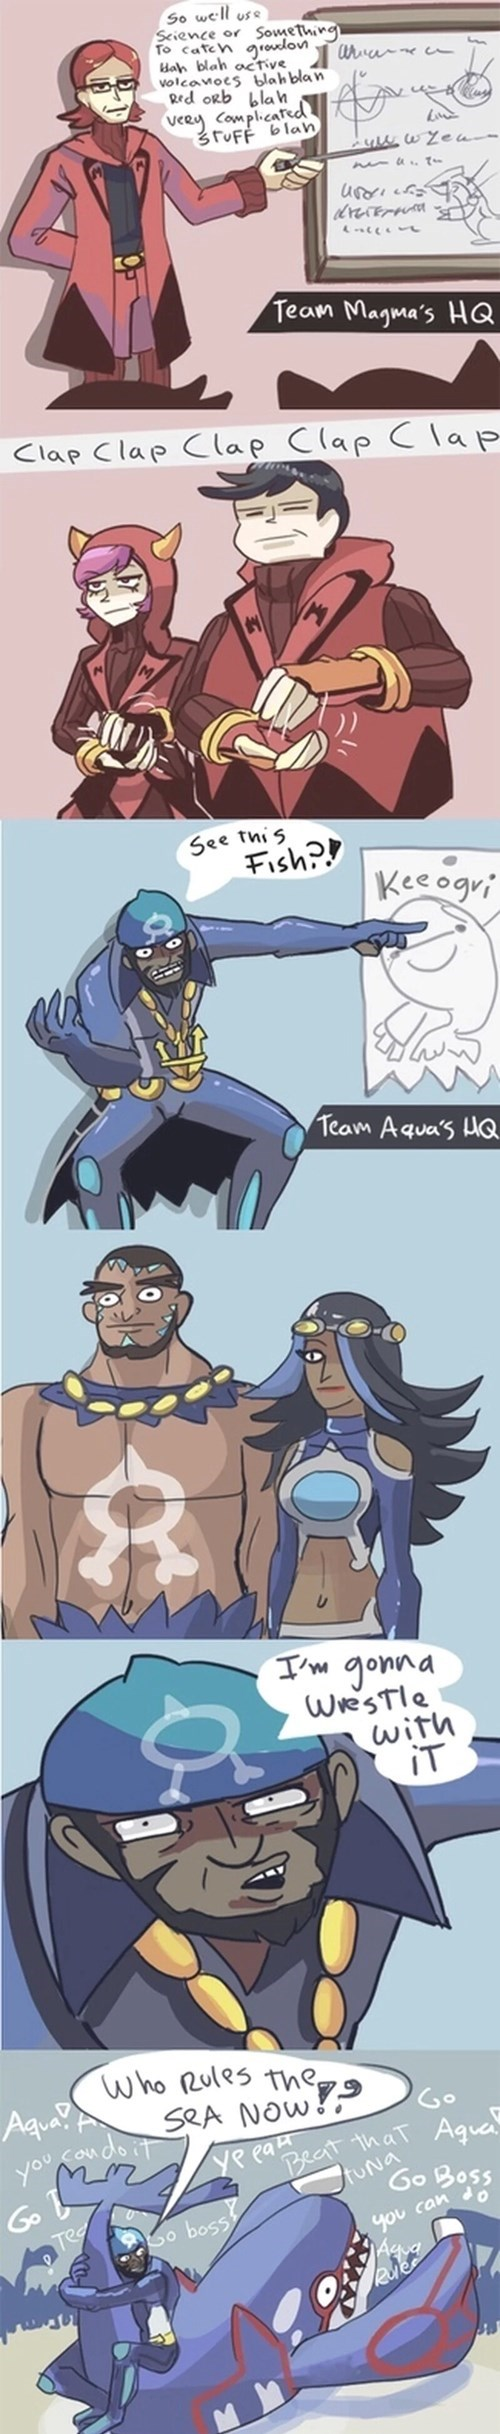 The Difference Between Team Magma and Team Aqua